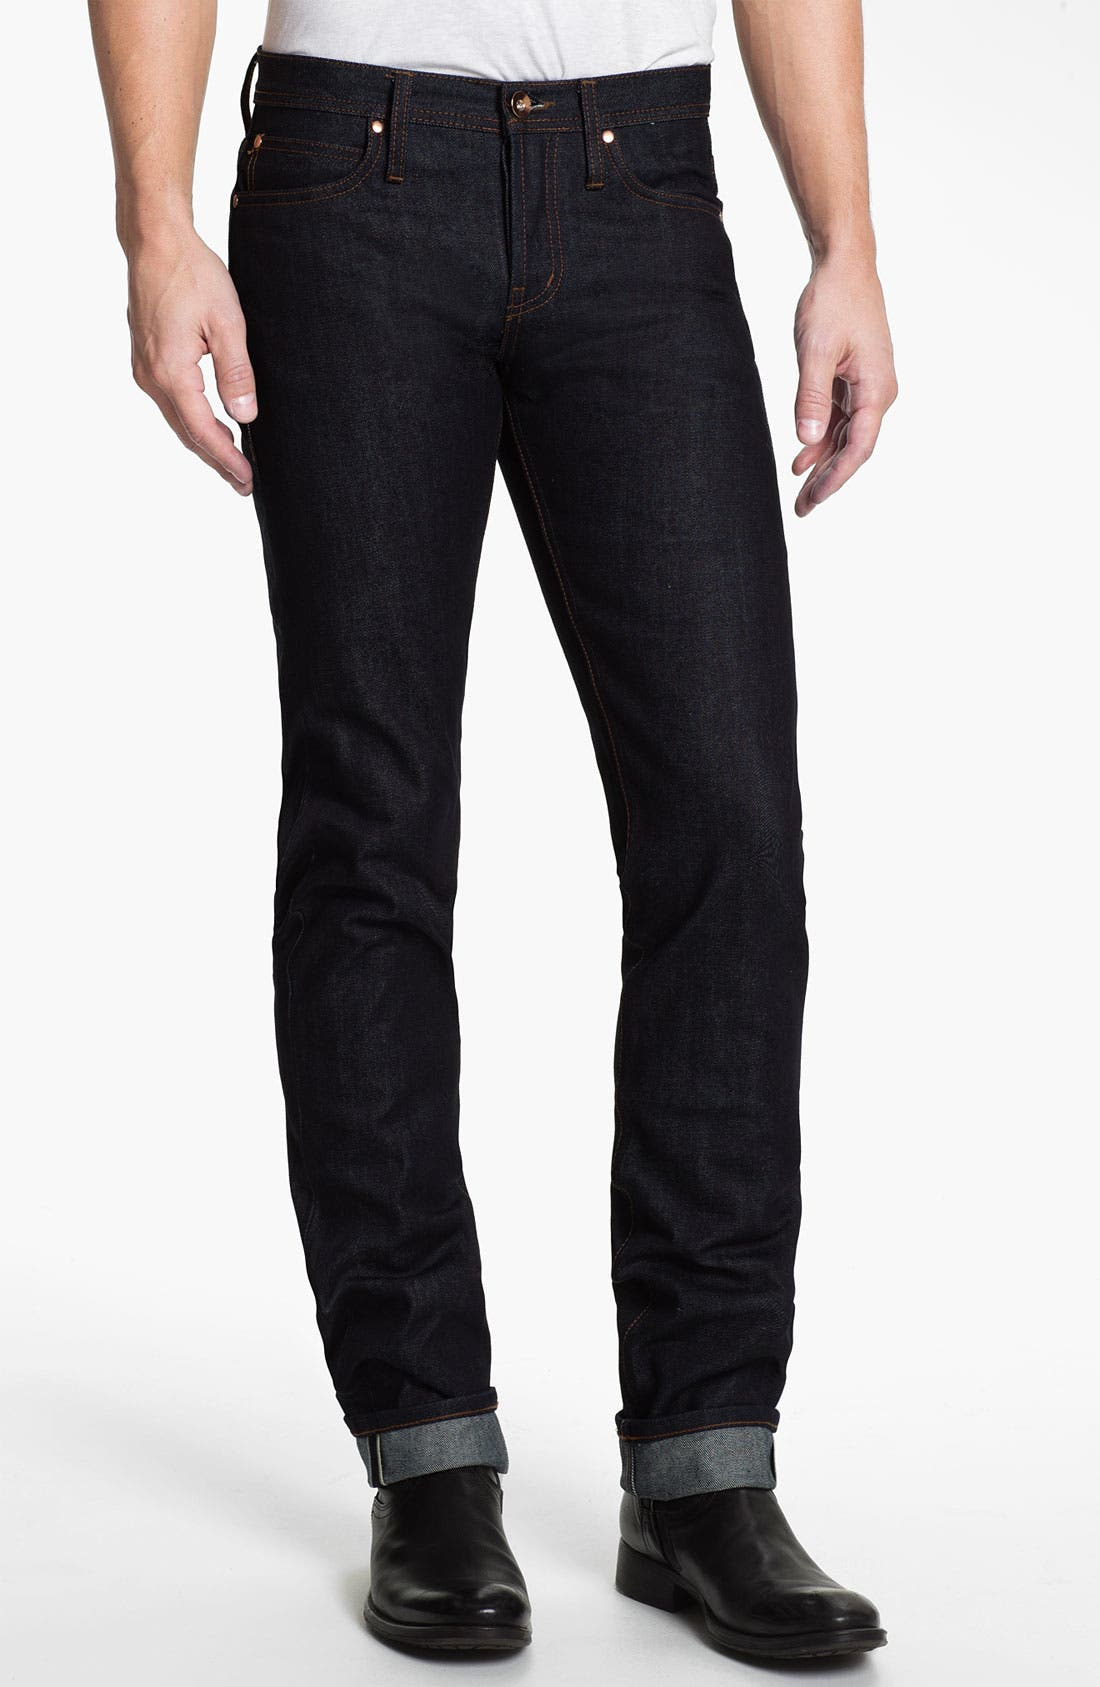 UB101 Skinny Fit Raw Selvedge Jeans,                             Main thumbnail 1, color,                             INDIGO